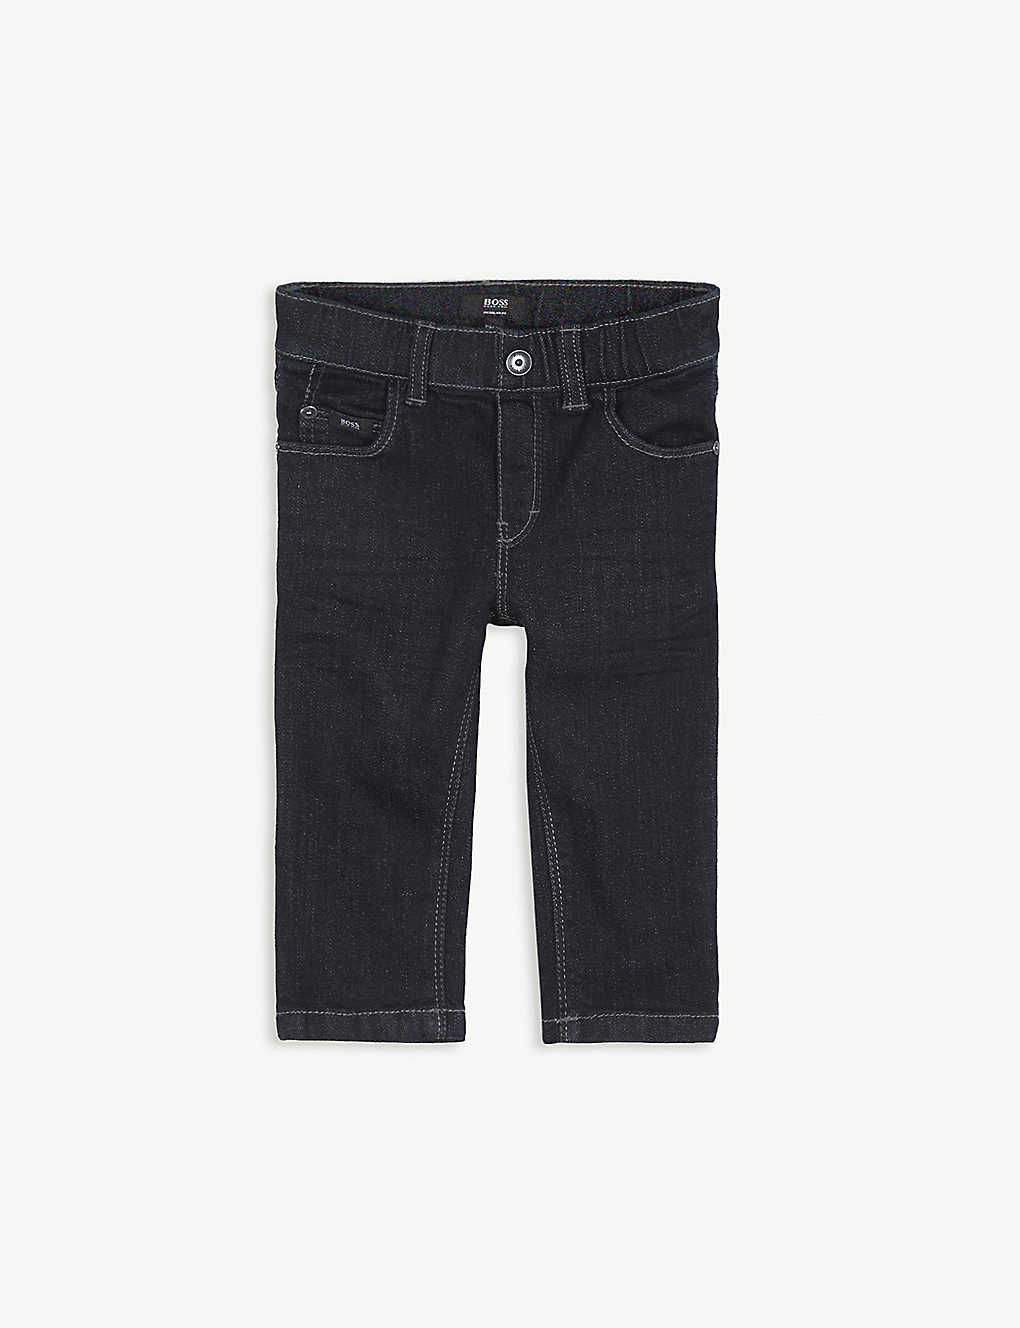 BOSS: Dark wash stretch-cotton jeans 6-12 months